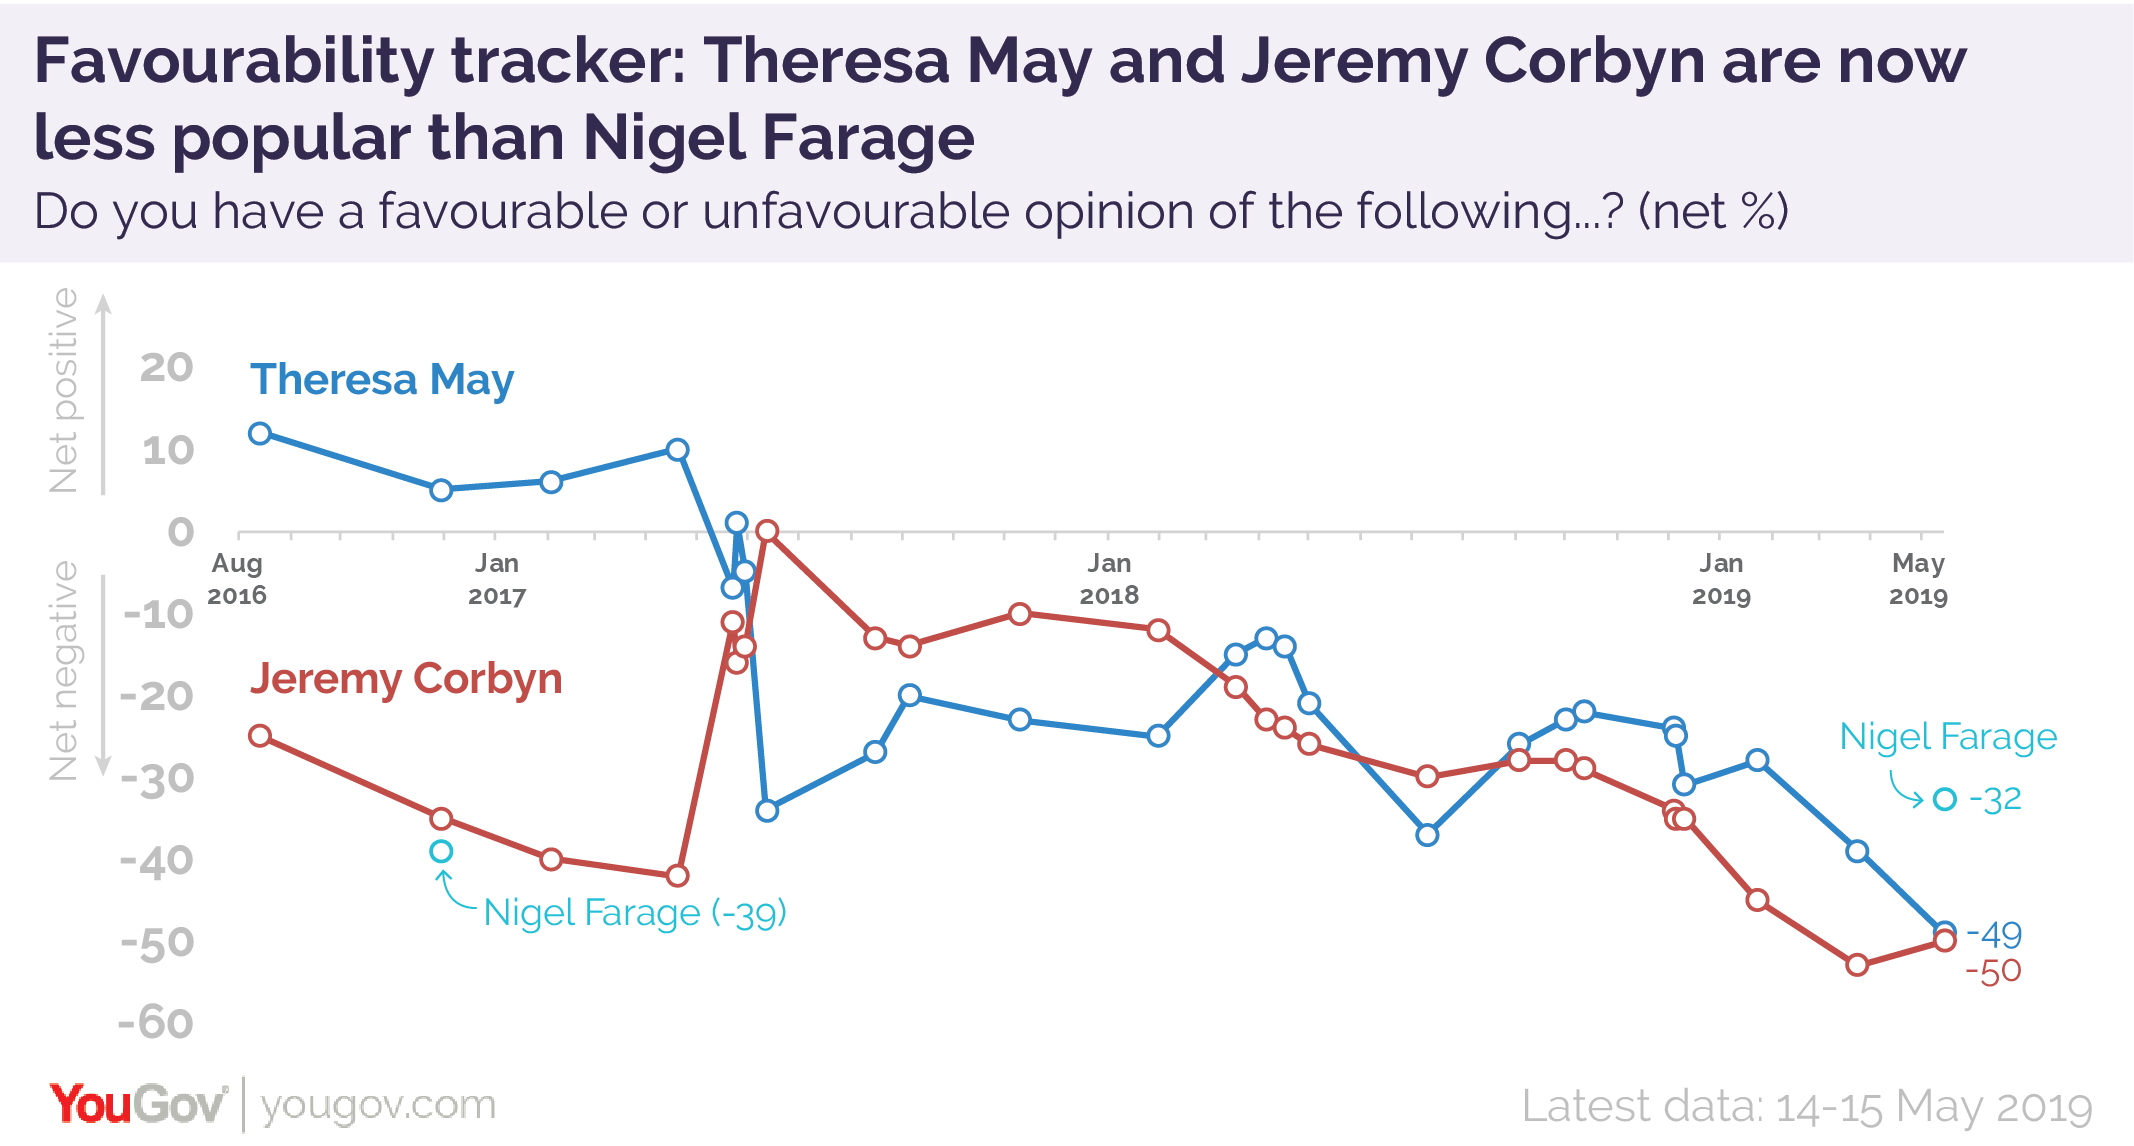 Favourability%20tracker%20May%202019-01.png